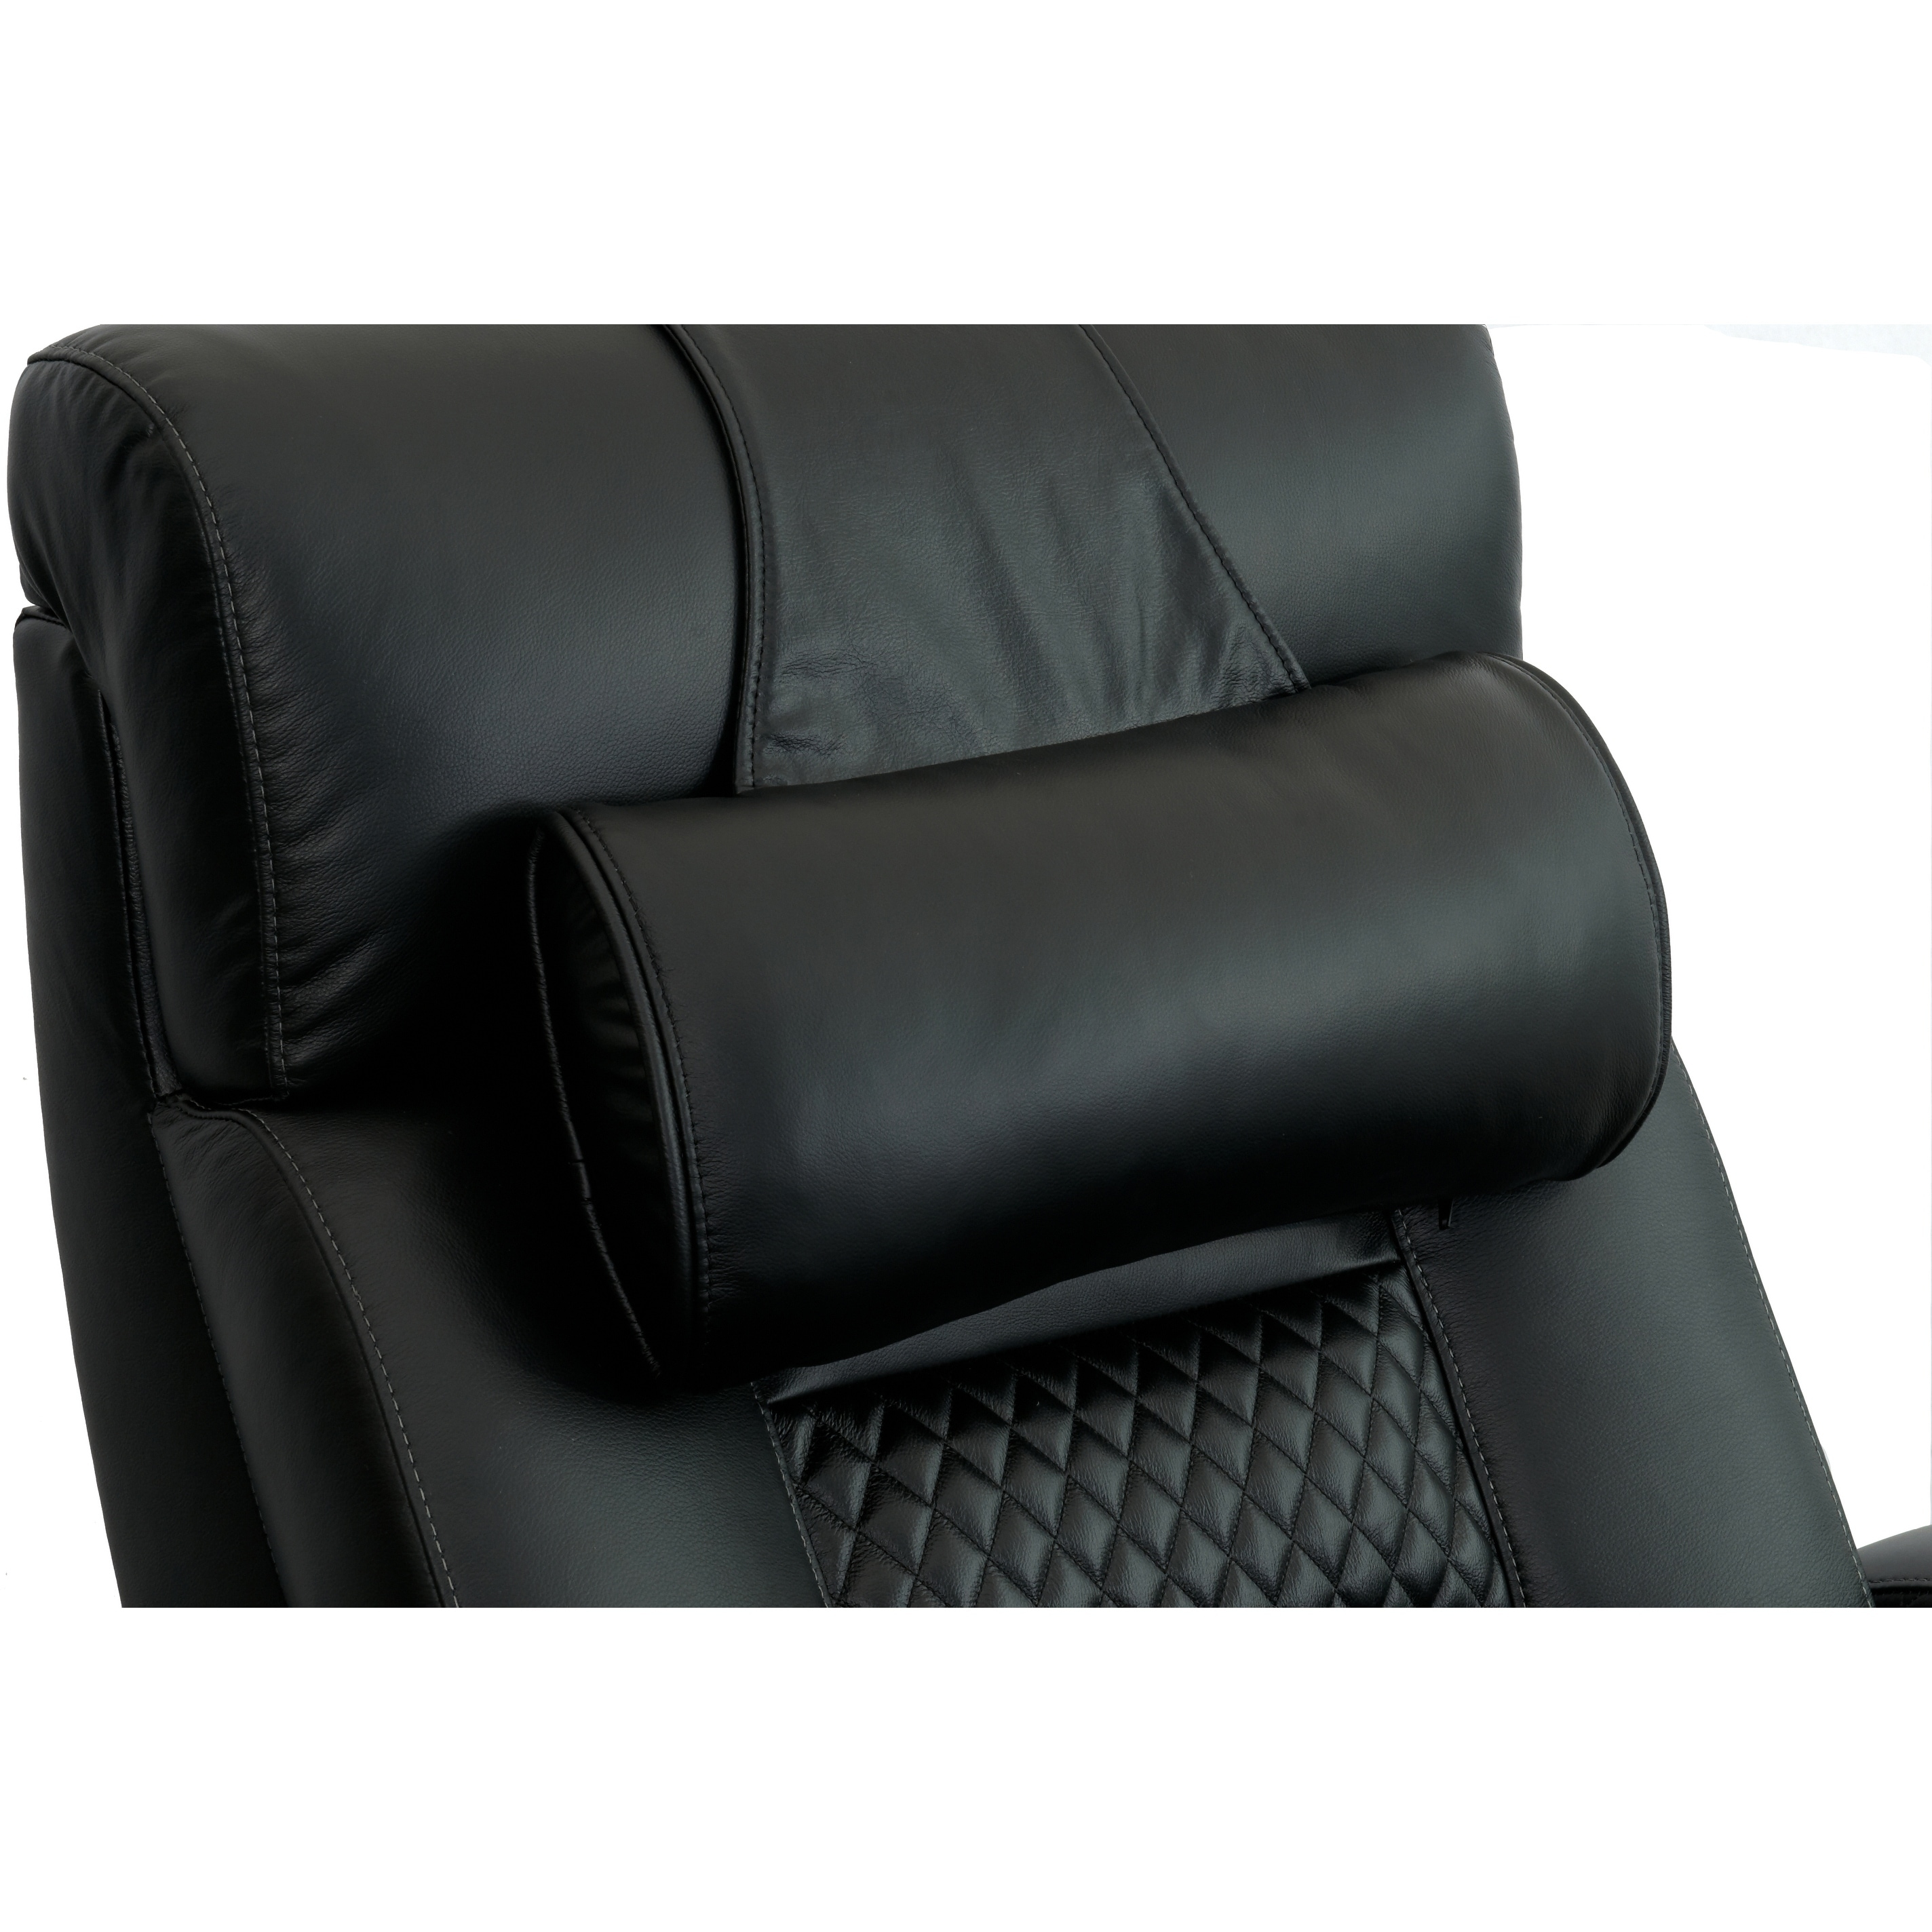 Peachy Theater Seating Living Room Furniture Find Great Furniture Uwap Interior Chair Design Uwaporg